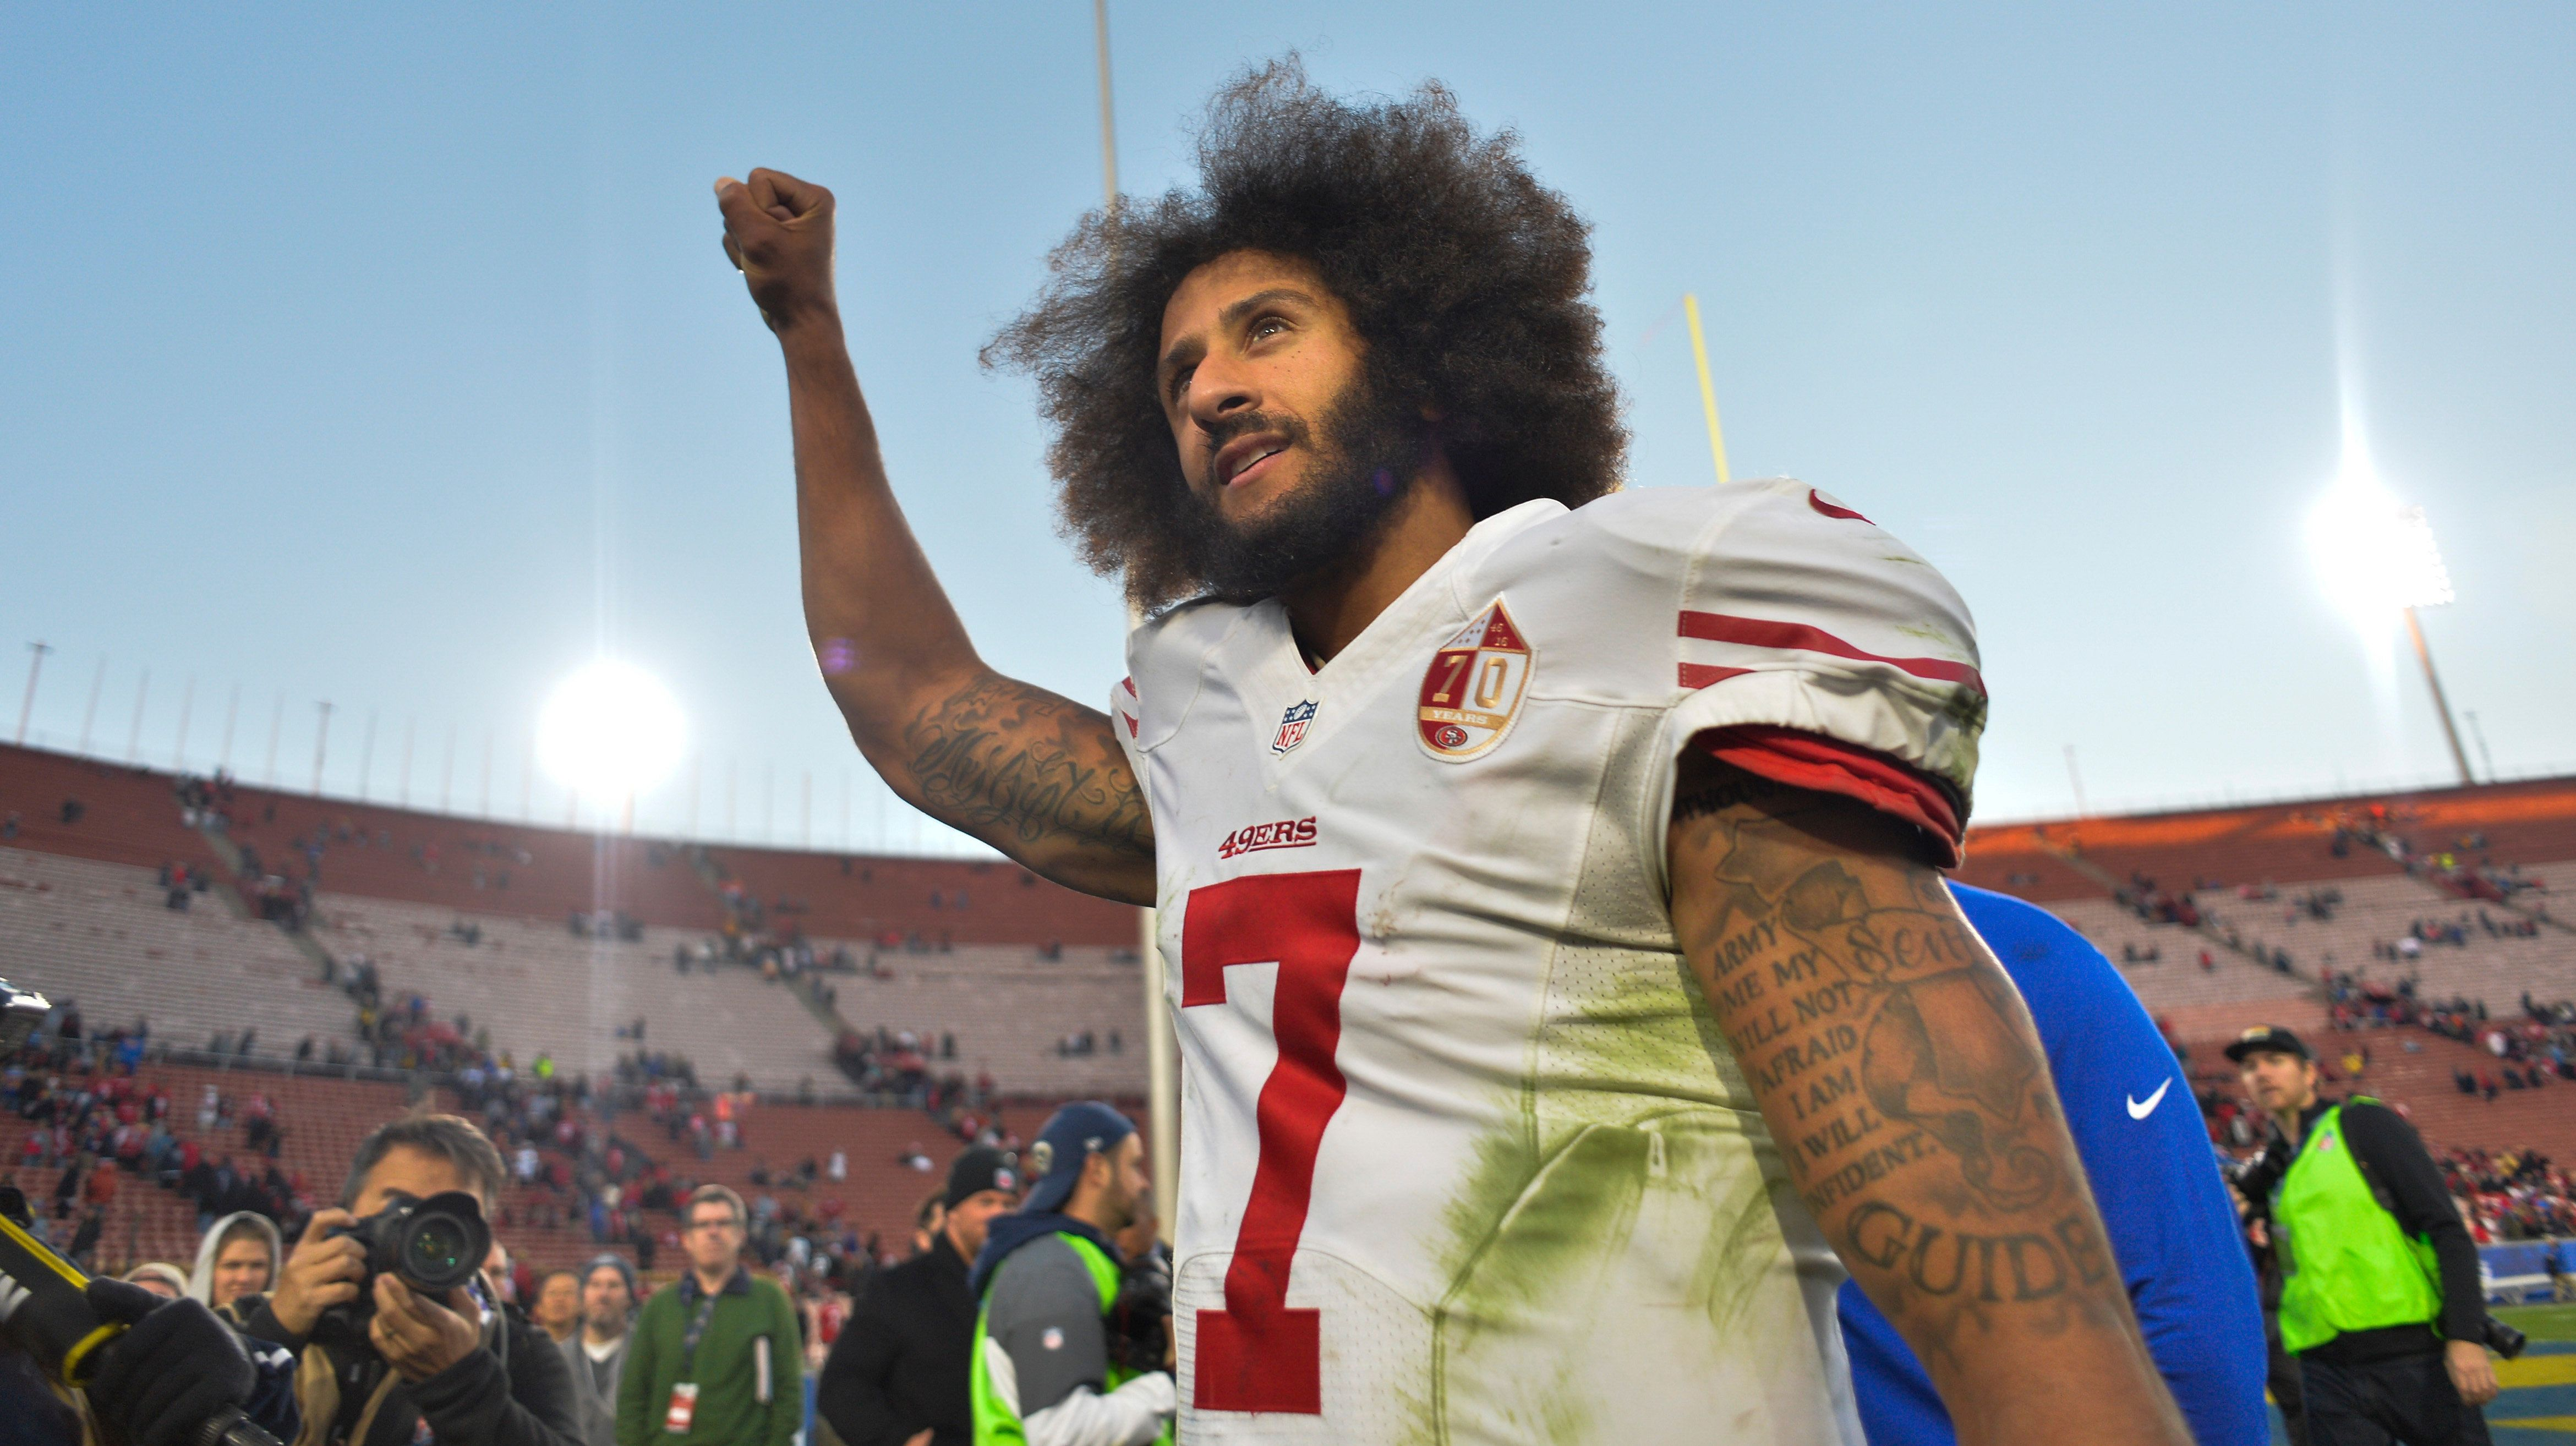 Dec 24, 2016; Los Angeles, CA, USA; San Francisco 49ers quarterback Colin Kaepernick (7) pumps his fist as he acknowledges the cheers from the 49ers' fans after leading his team to a 22-21 come-from-behind win over the Los Angeles Rams at Los Angeles Memorial Coliseum. Mandatory Credit: Robert Hanashiro-USA TODAY Sports